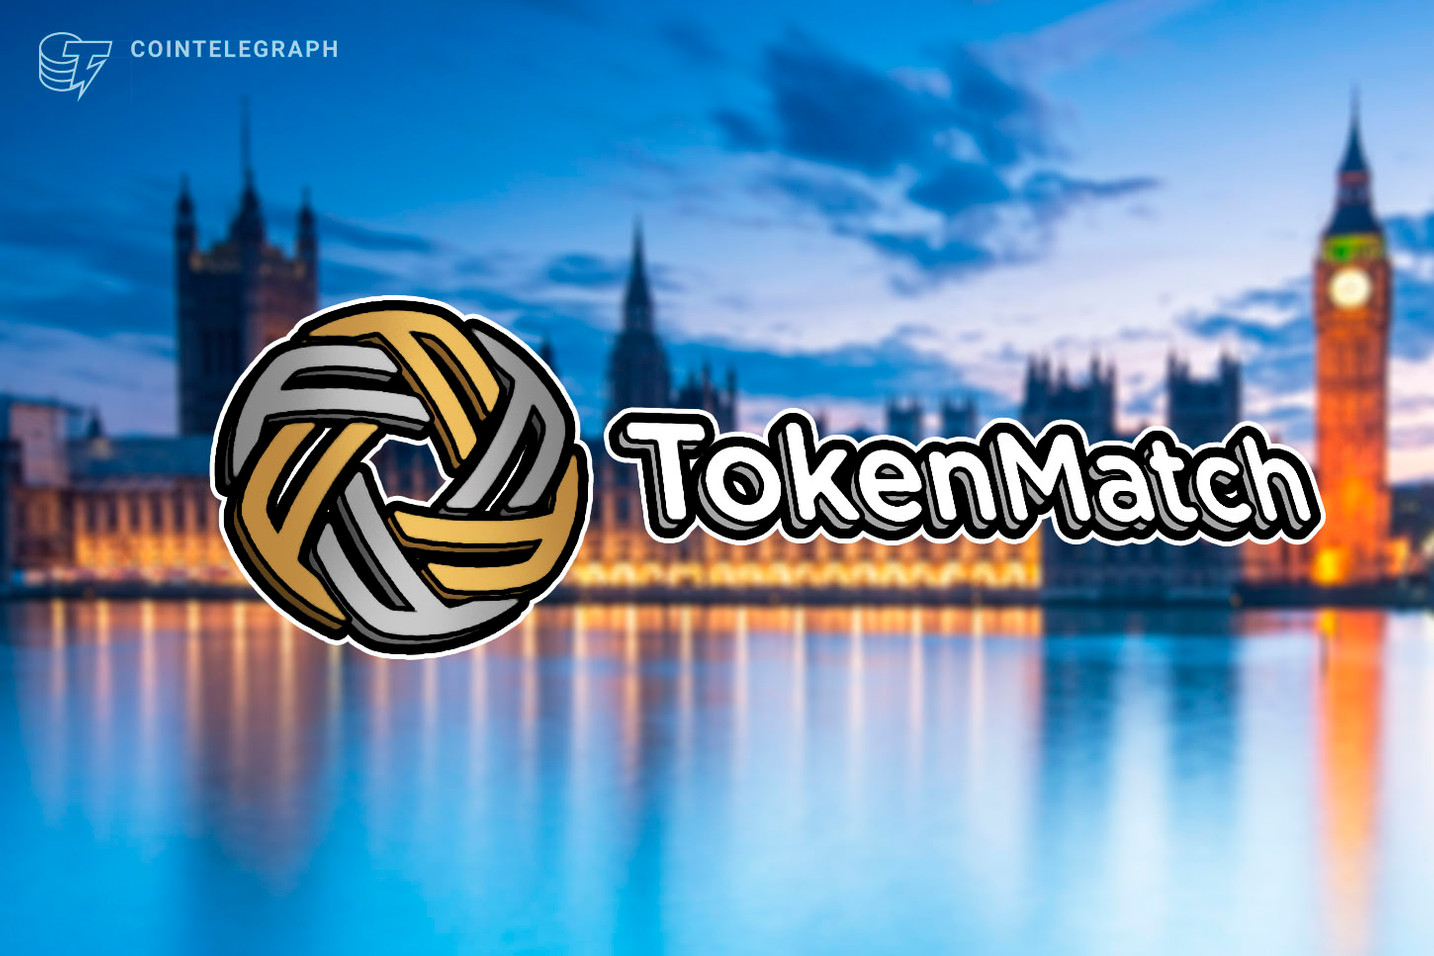 TokenMatch Goes Back to London for Its First Edition of 2019